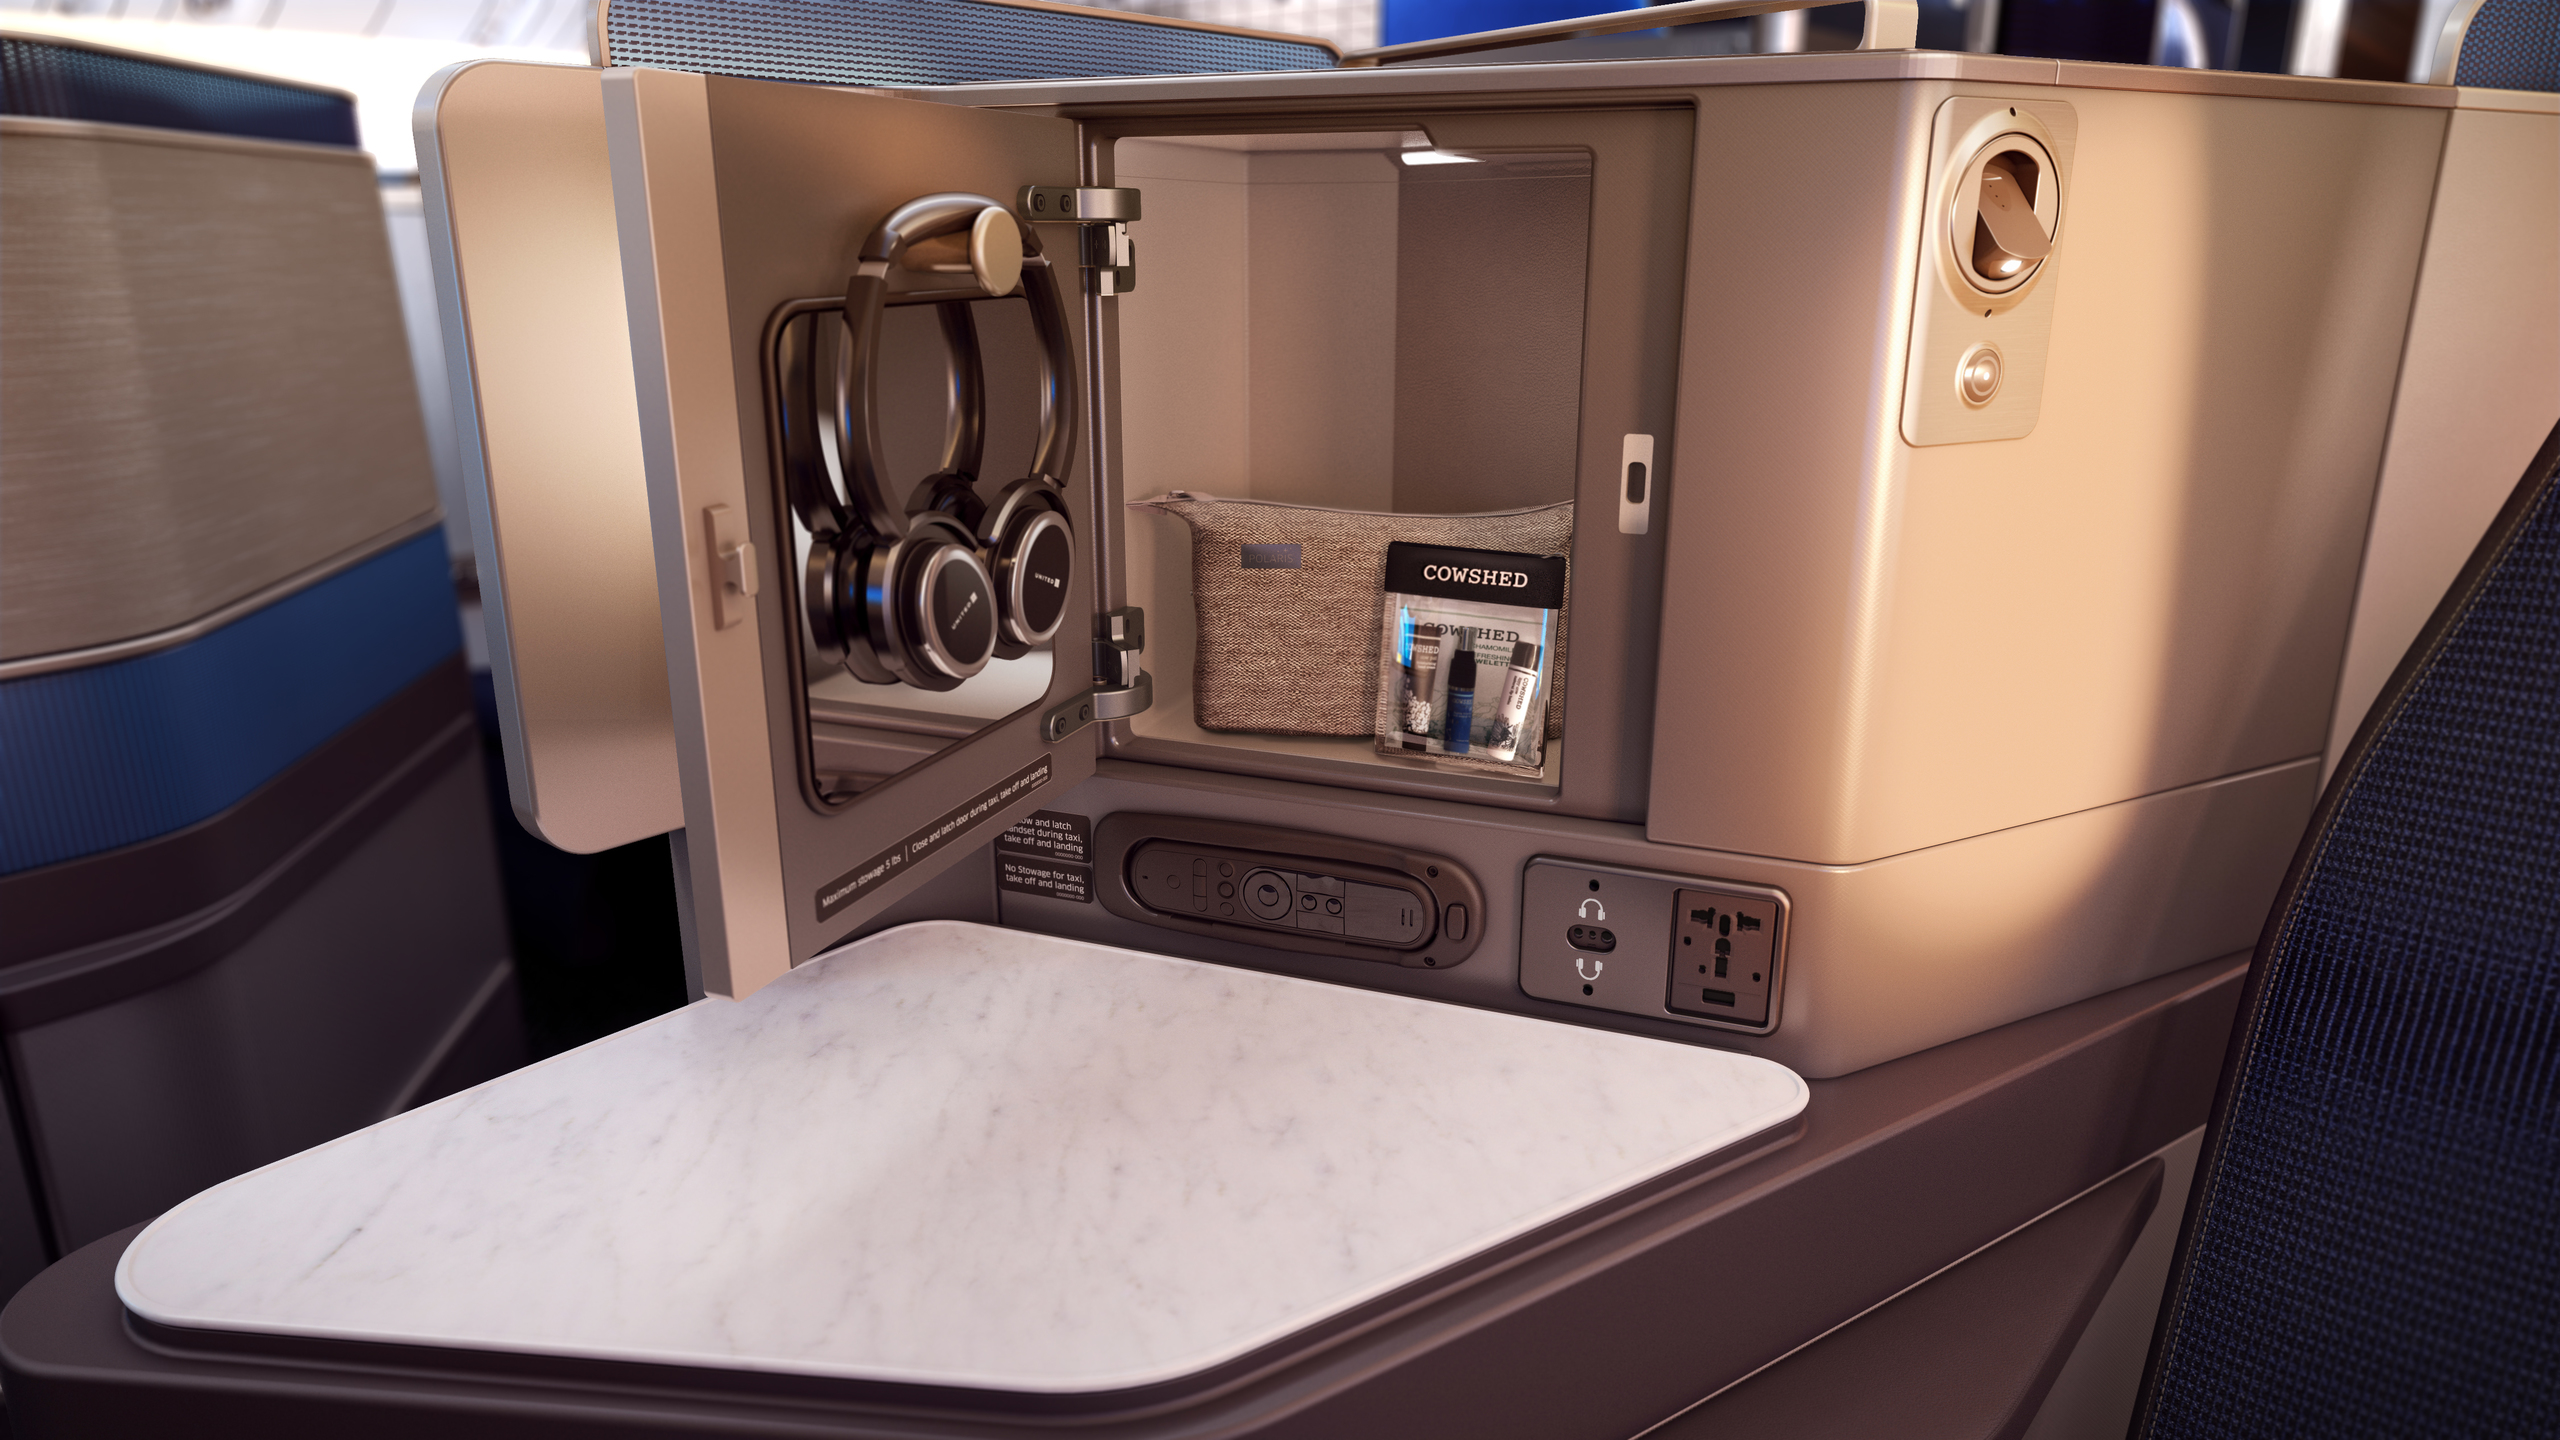 United Business Class Seats